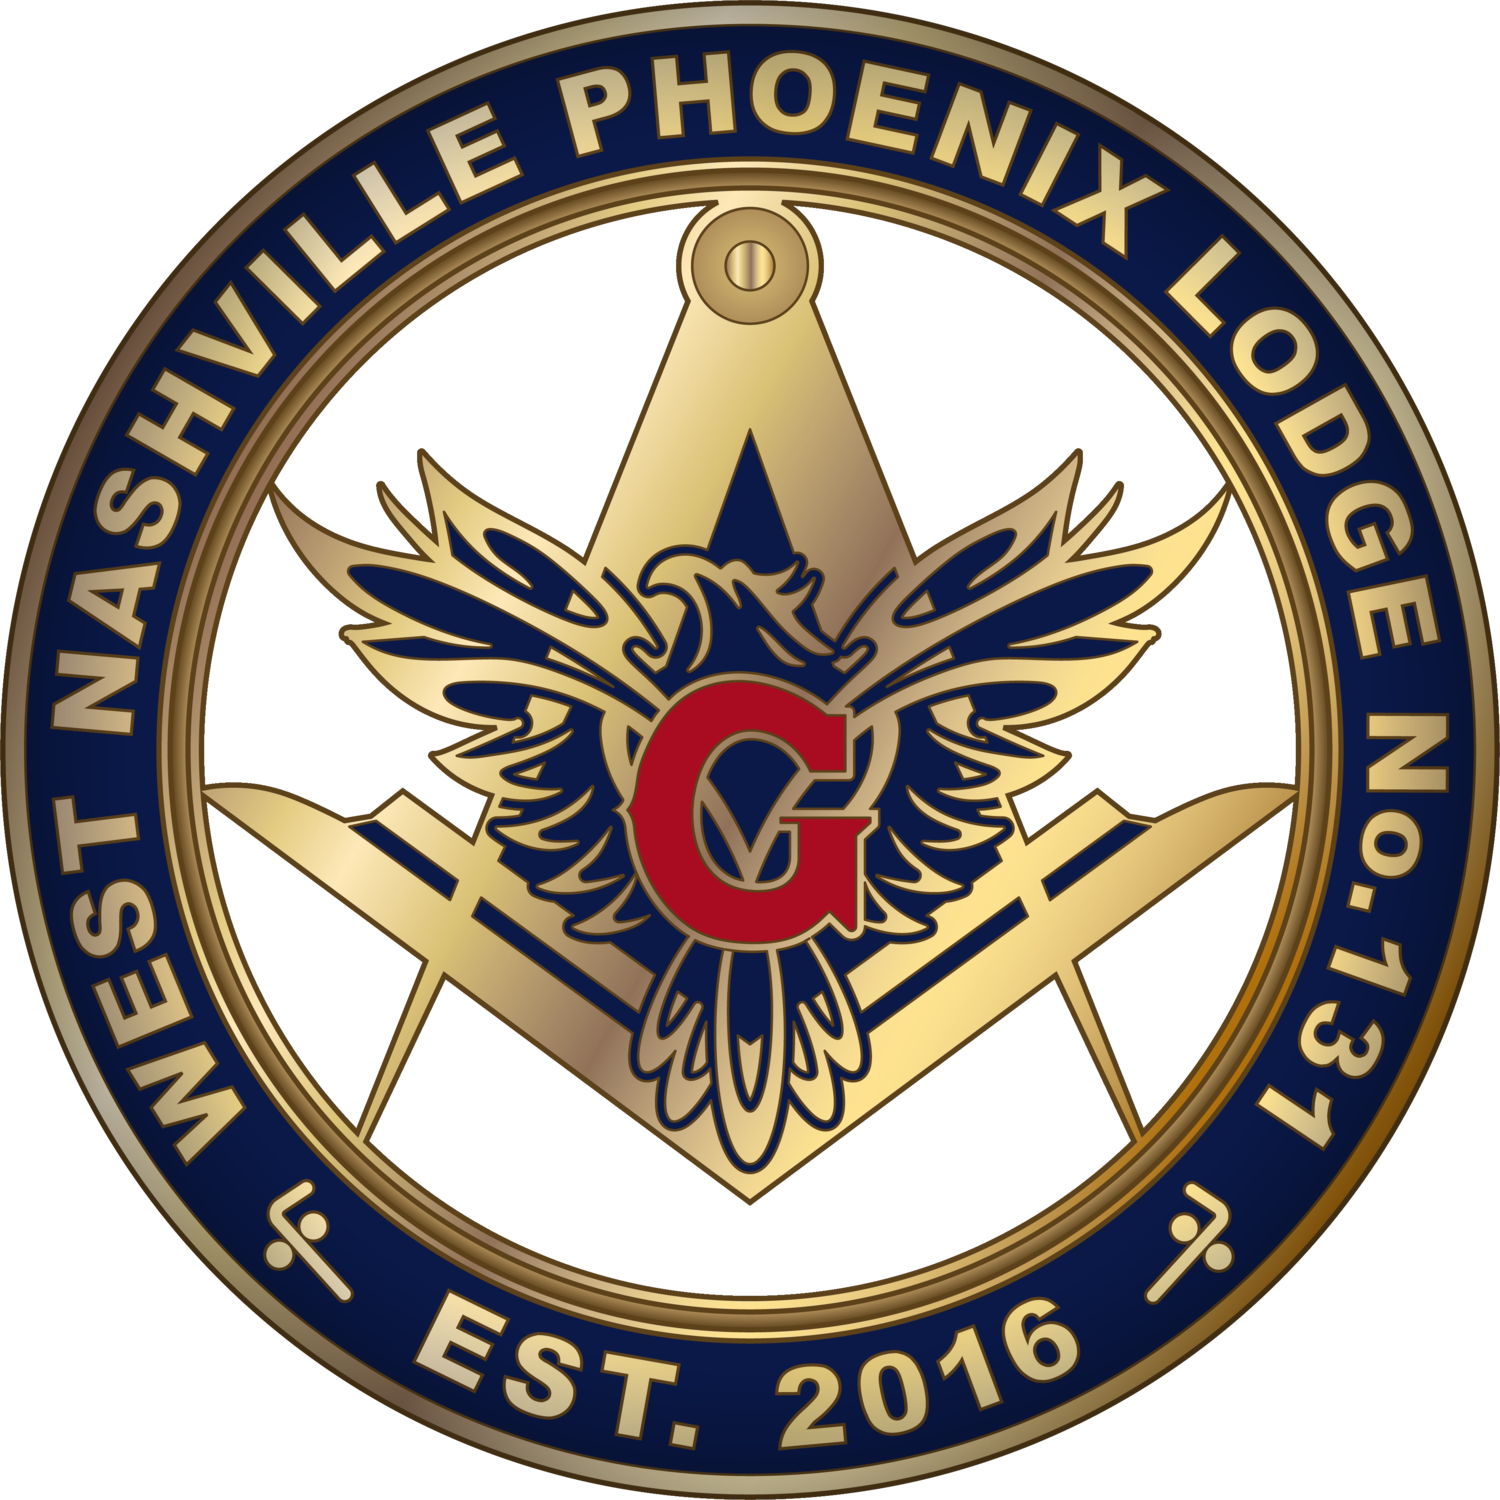 West Nashville Phoenix 131